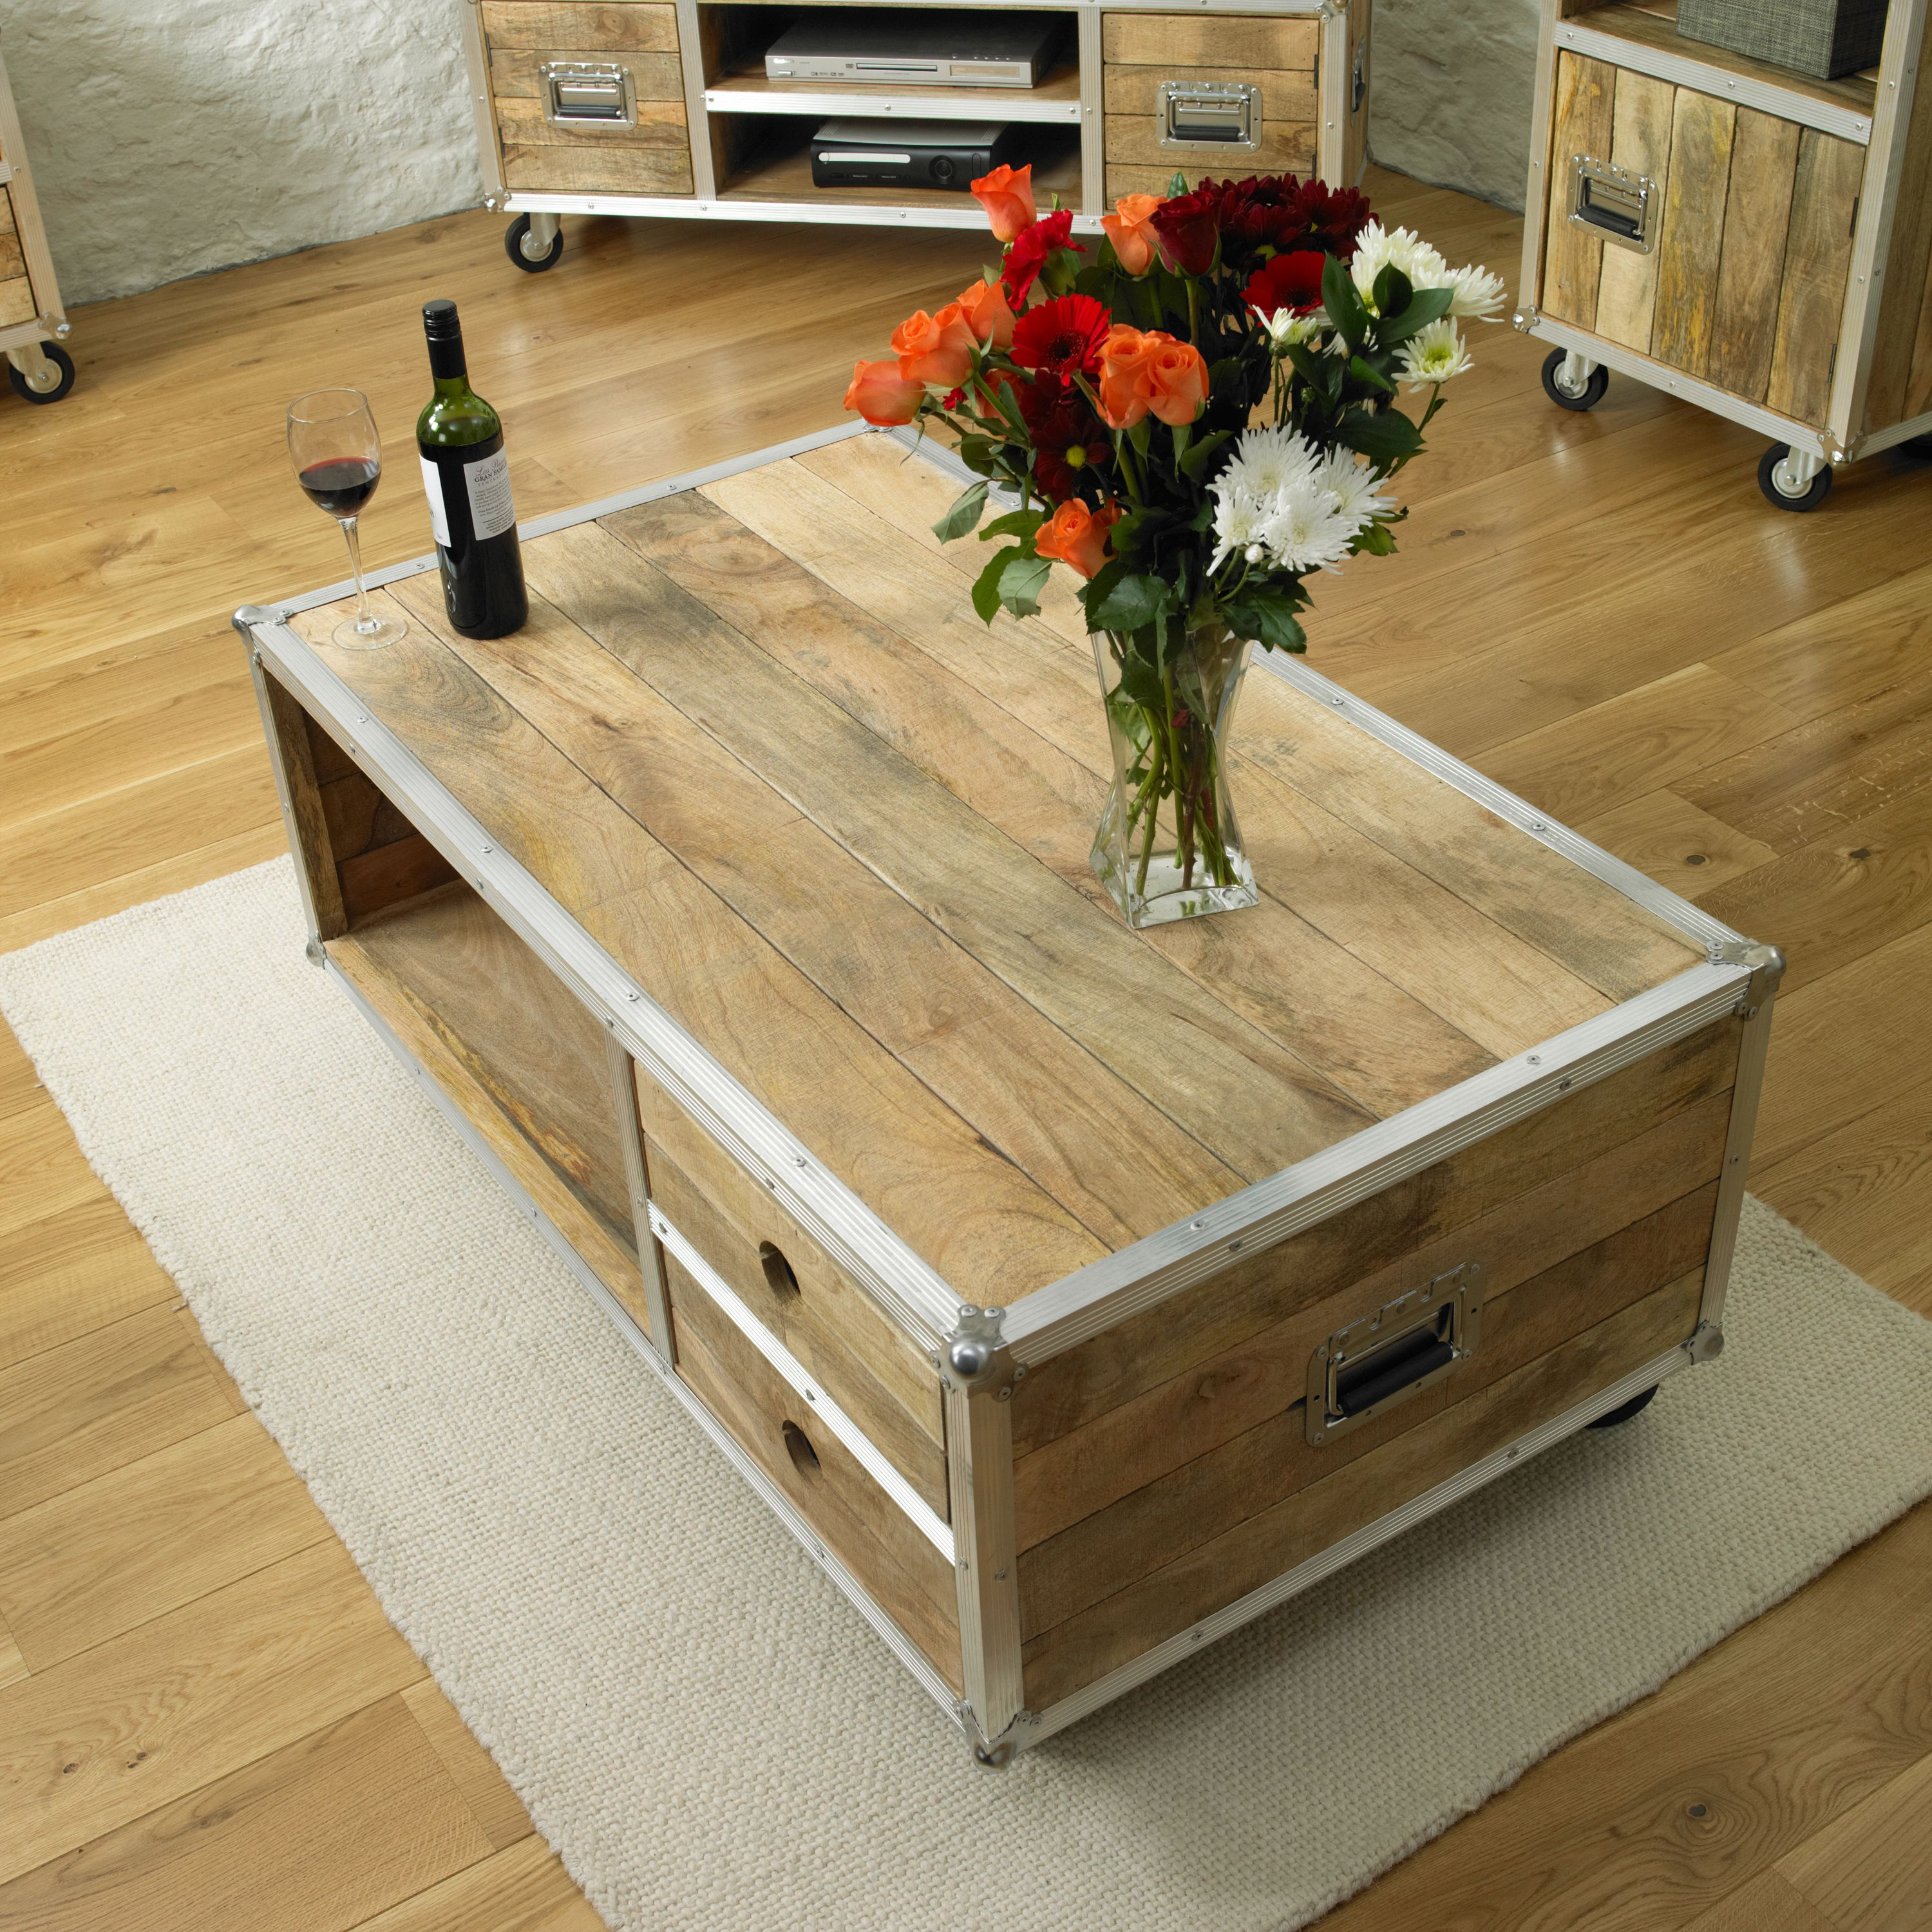 Houzit Furniture Quality Home Furniture Uk Reclaimed Wood Coffee Table Coffee Table With Drawers Furniture